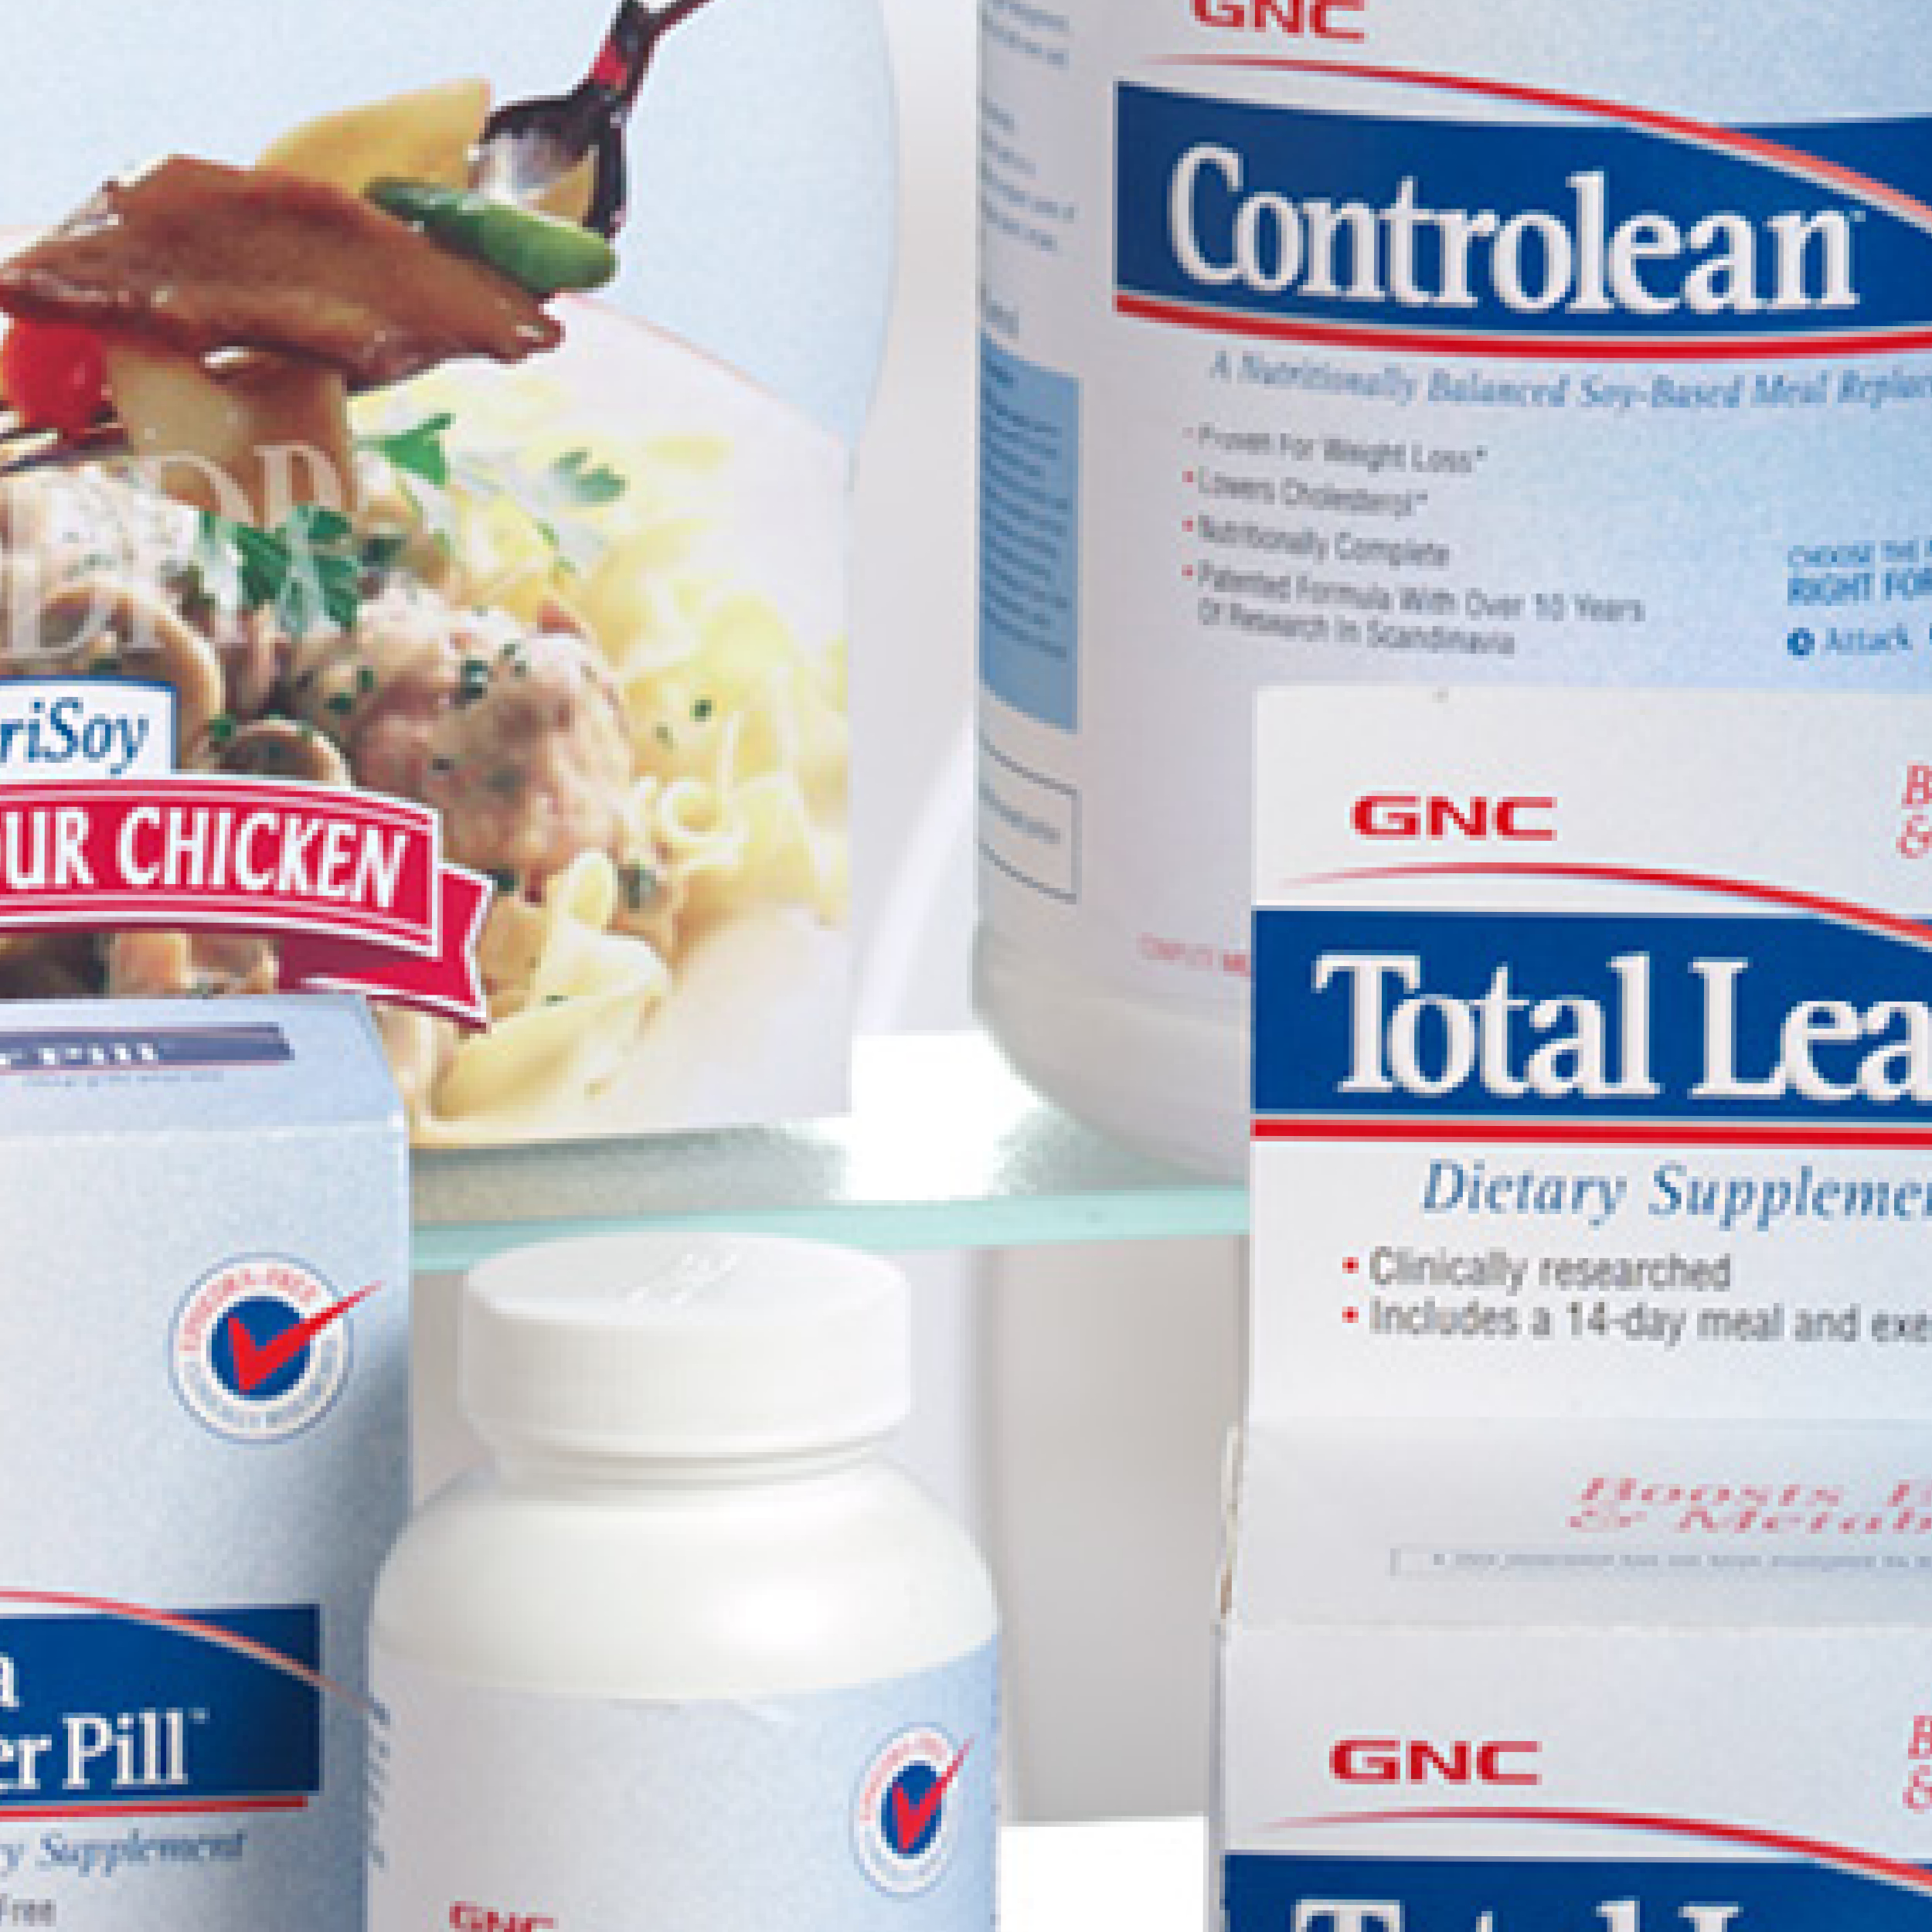 GNC | TOTAL LEAN   PRODUCT REBRAND & POSITIONING STRATEGY GENERATES $26M+ IN FIRST SIX MONTHS